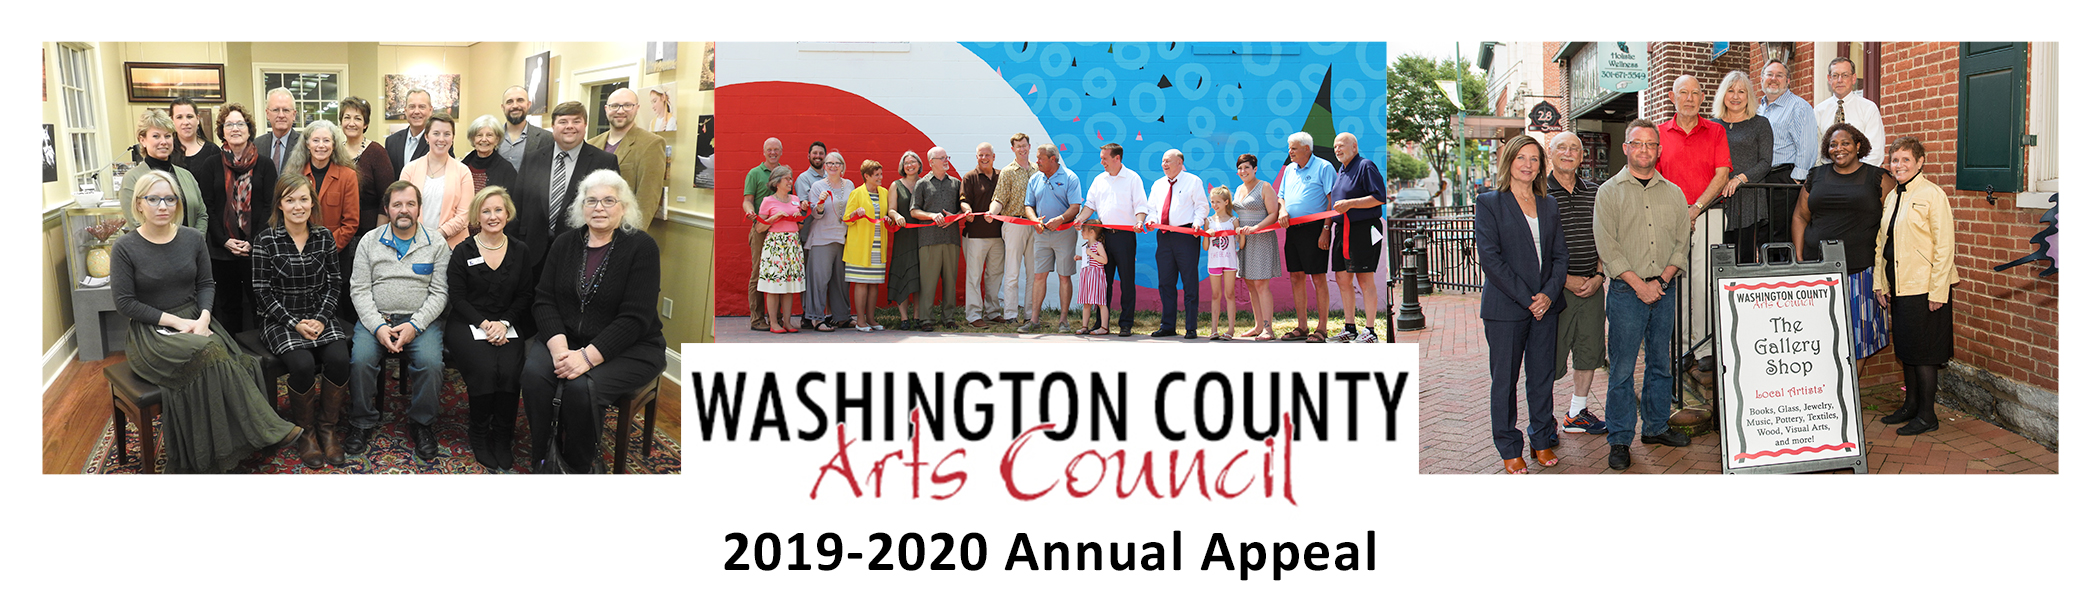 2019-2020 Annual Appeal